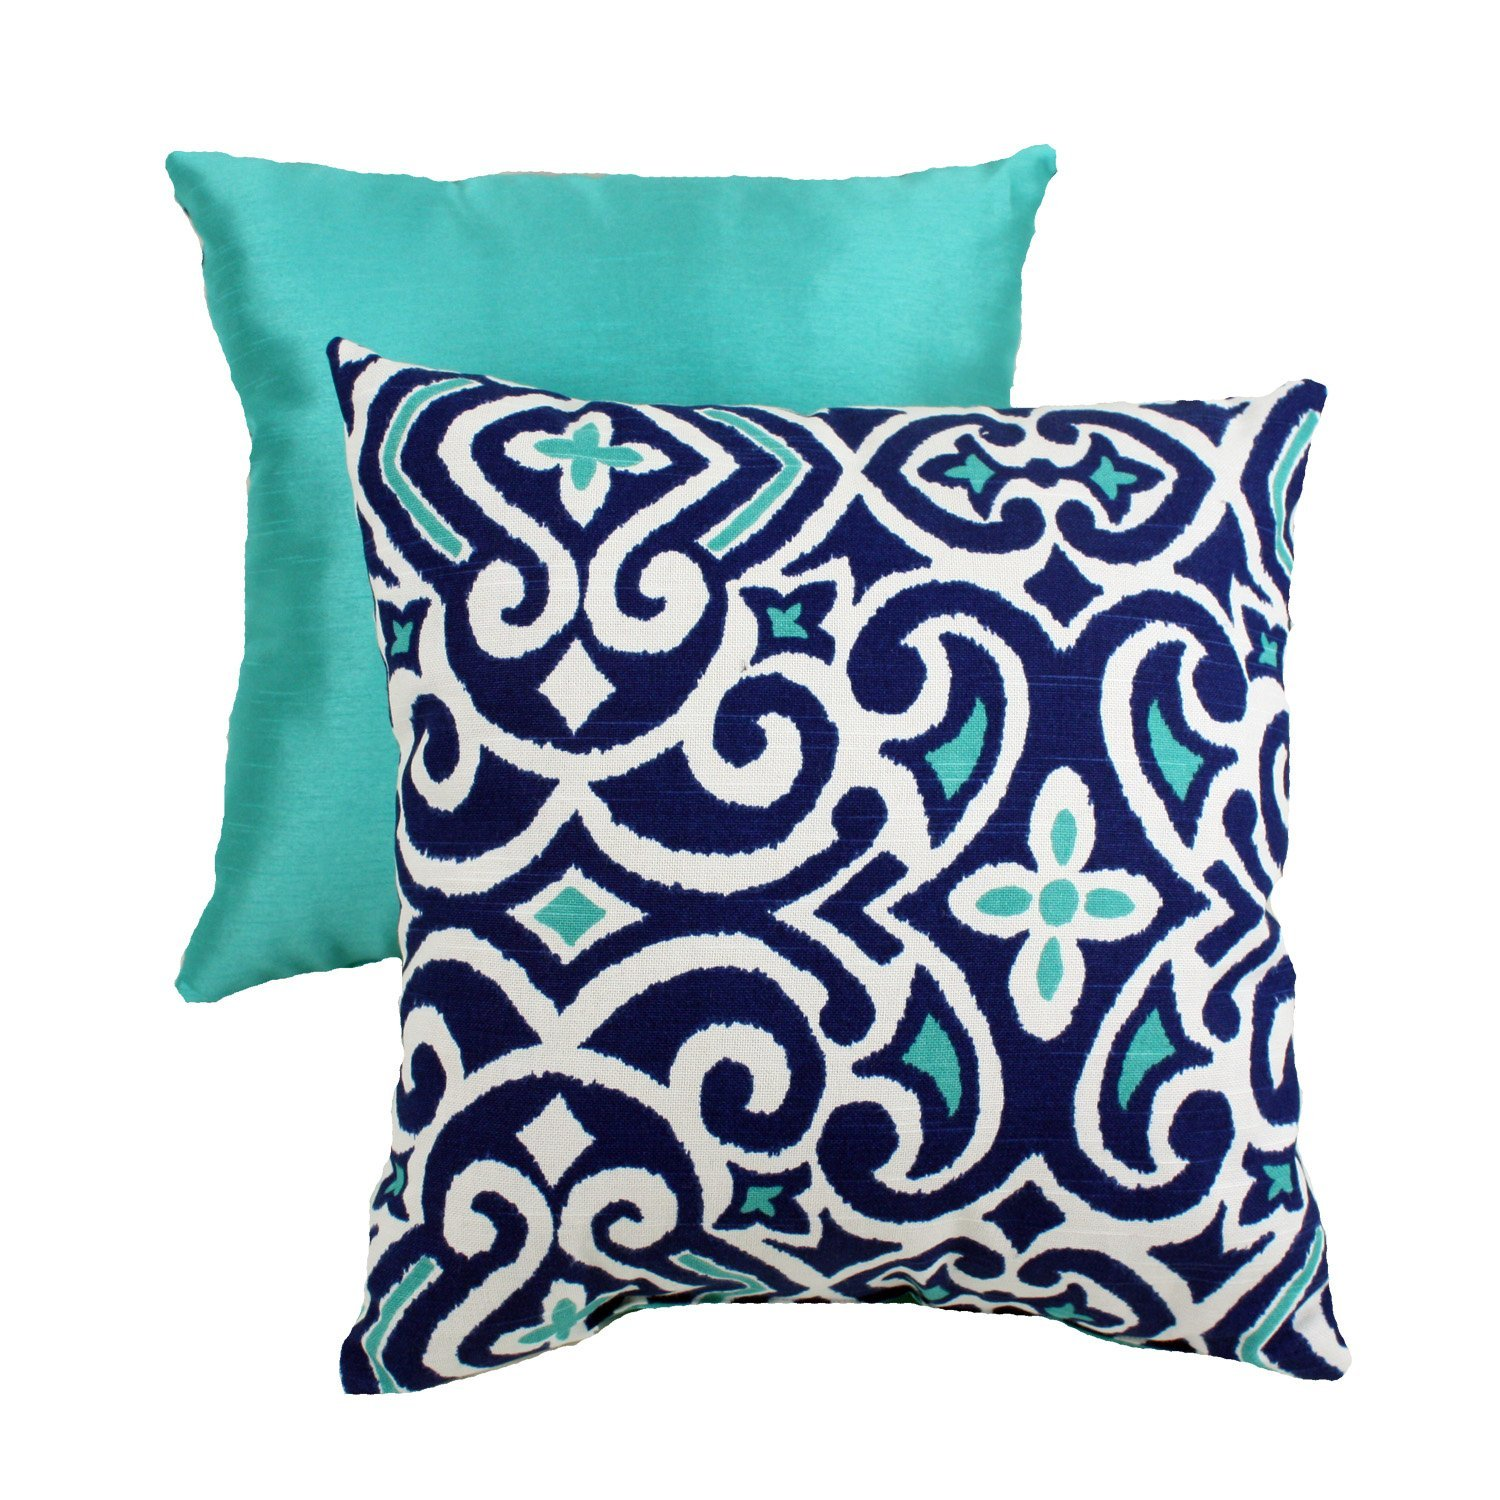 sofa pillows with dark blue and blue azzure colors